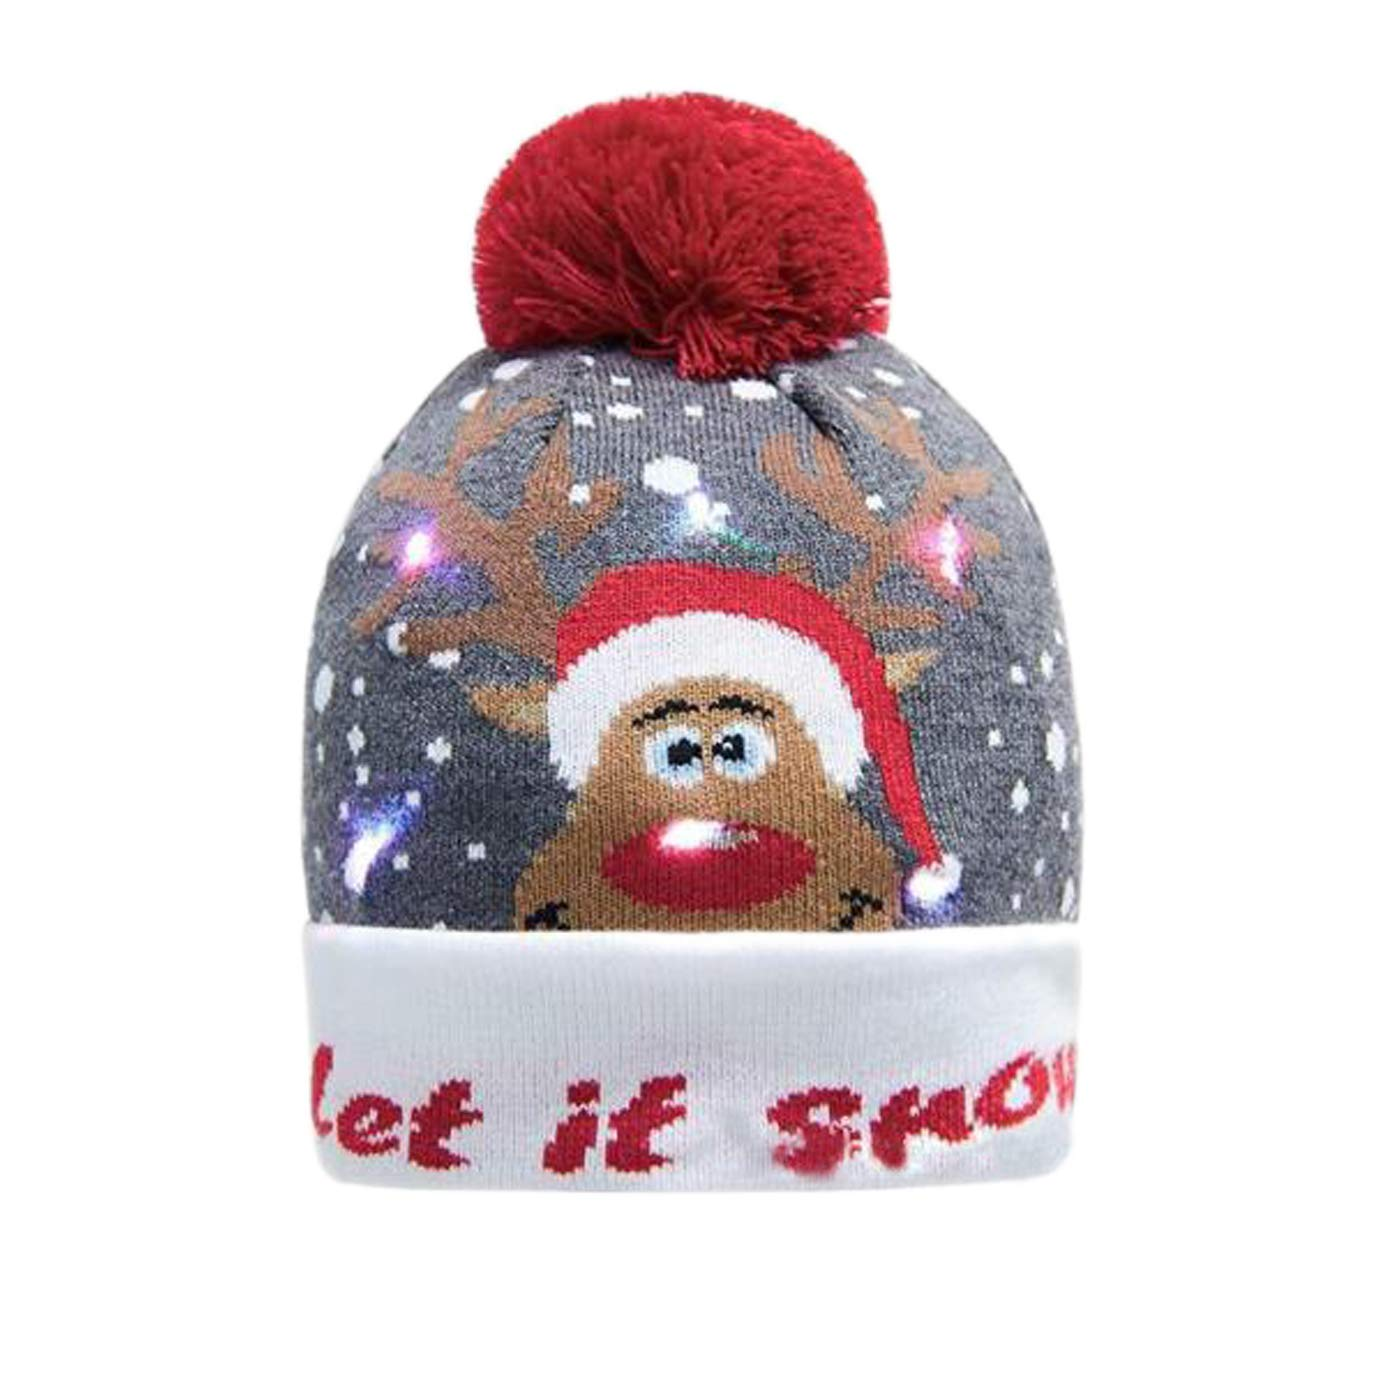 Stylish LED Light Up Knitted Ugly Pom Hat Holiday Xmas Christmas Beanie Hats Cap for Adults Kids Girls Boys Funny Hat Gifts